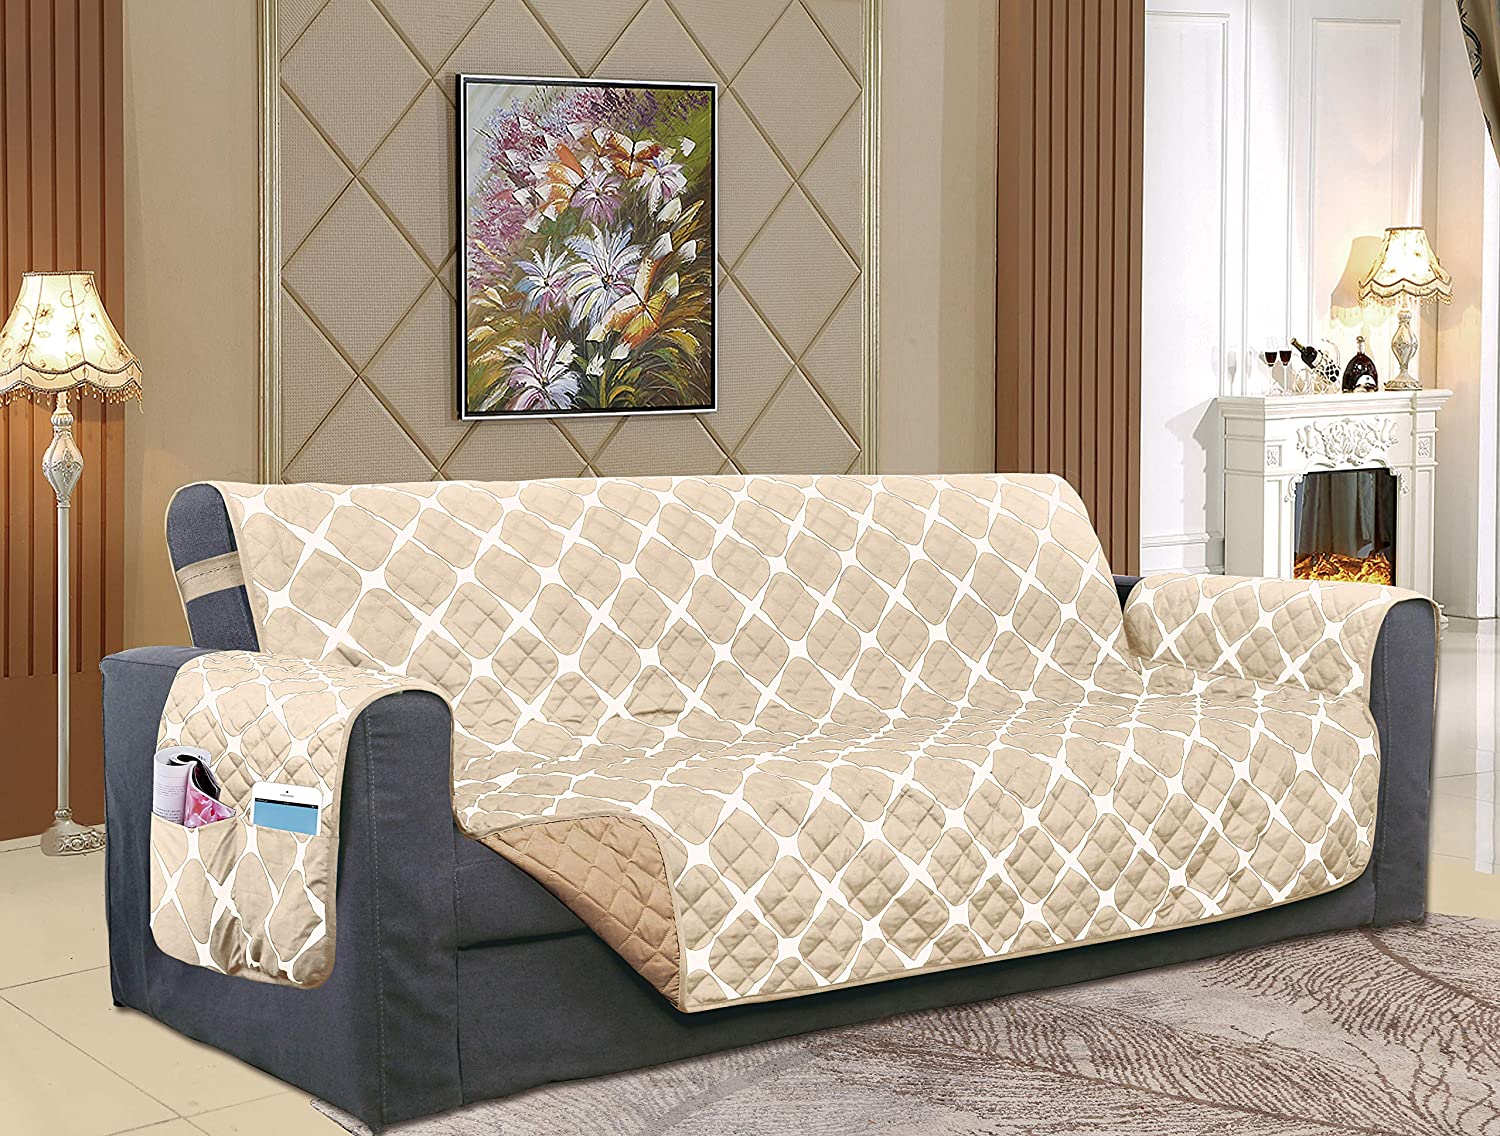 Elegant Comfort Luxury Bloomingdale Pattern Reversible 2-Tones Quilted Furniture Protector Slipcover, Featured Smart Pockets and Elastic Straps, Pets and Kids Protection, Oversized Sofa, Cream/Taupe